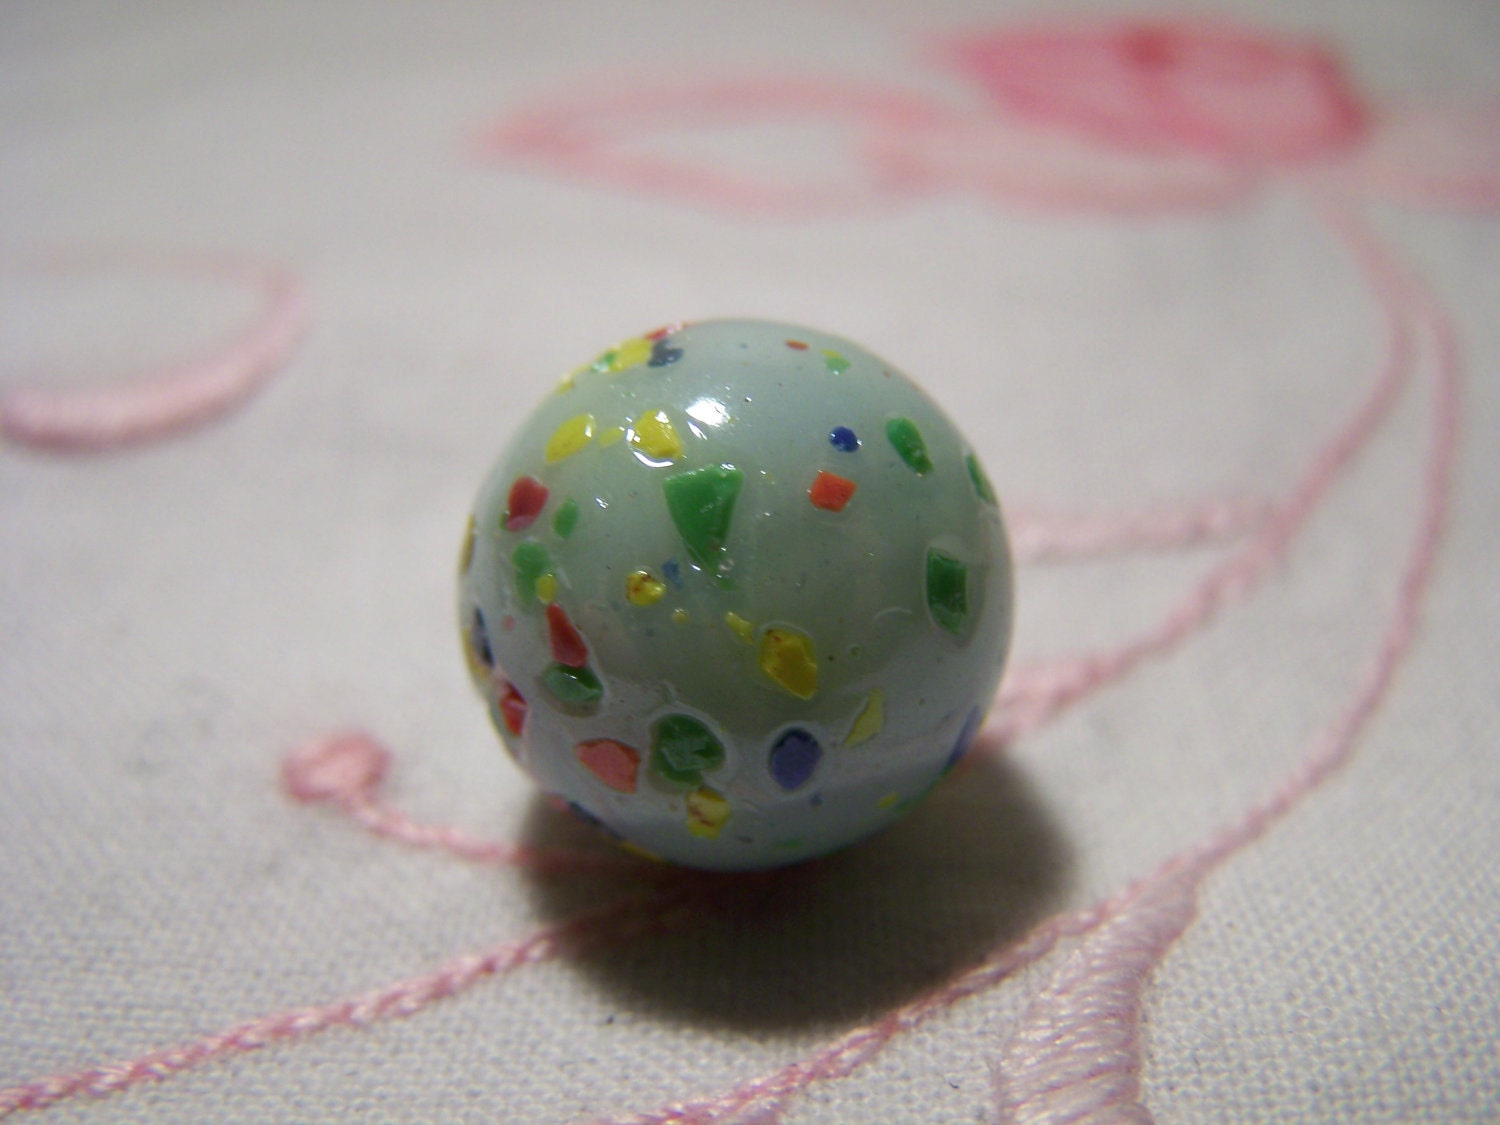 Green Marble Toy : Vintage light green speckled glass marbles